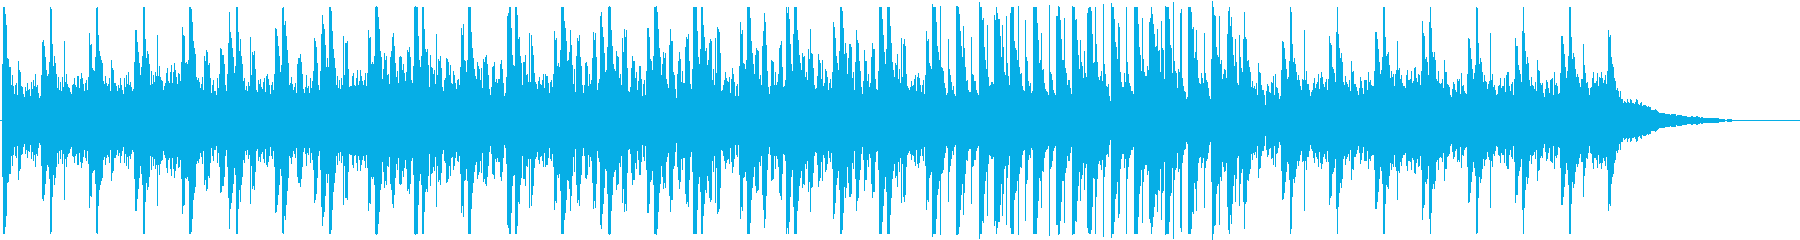 Japanese-style BGM of Japanese drums and sho (daily / comical)'s reproduced waveform